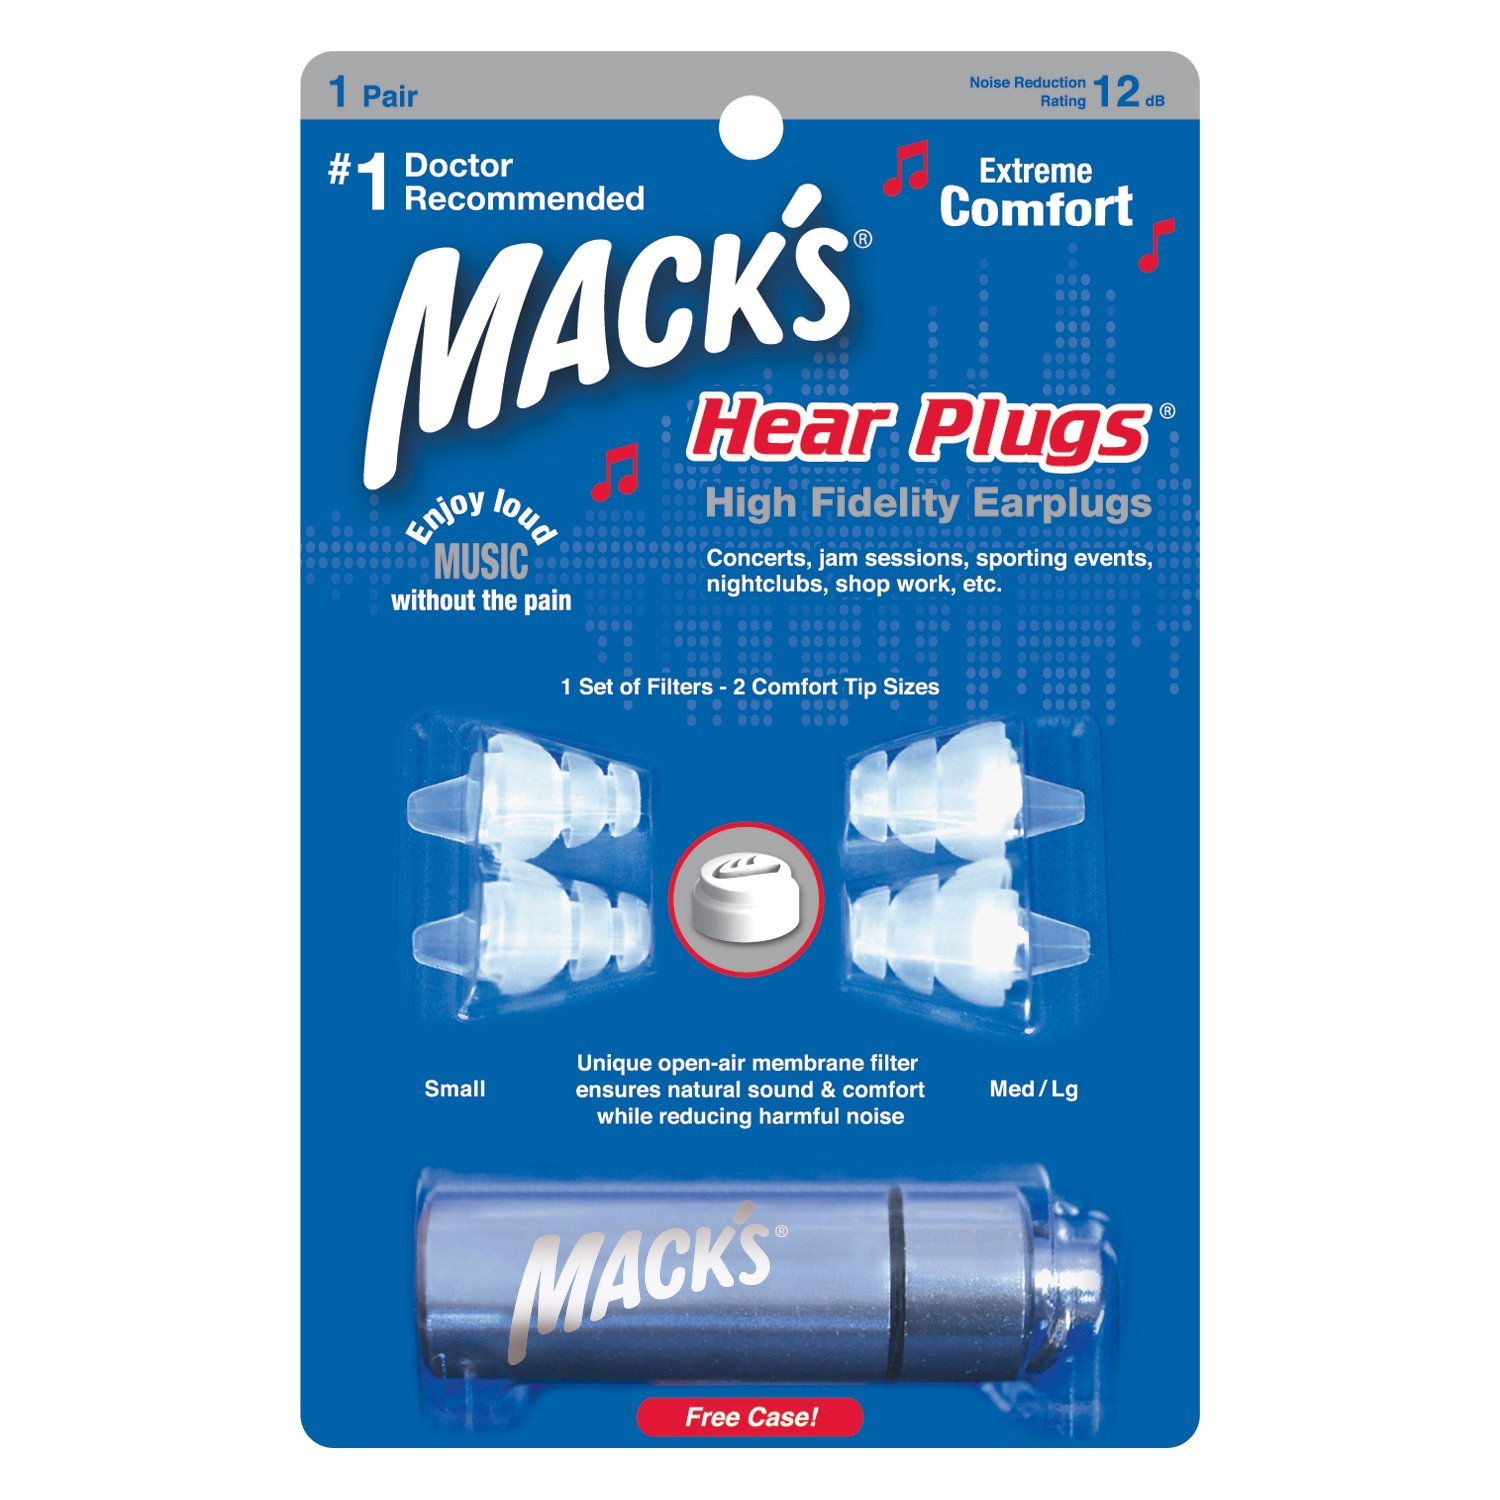 Mack's Hear Plugs High Fidelity Ear Plugs - Musician Earplugs - 1 Pair (2 comfort tip sizes) - Clear